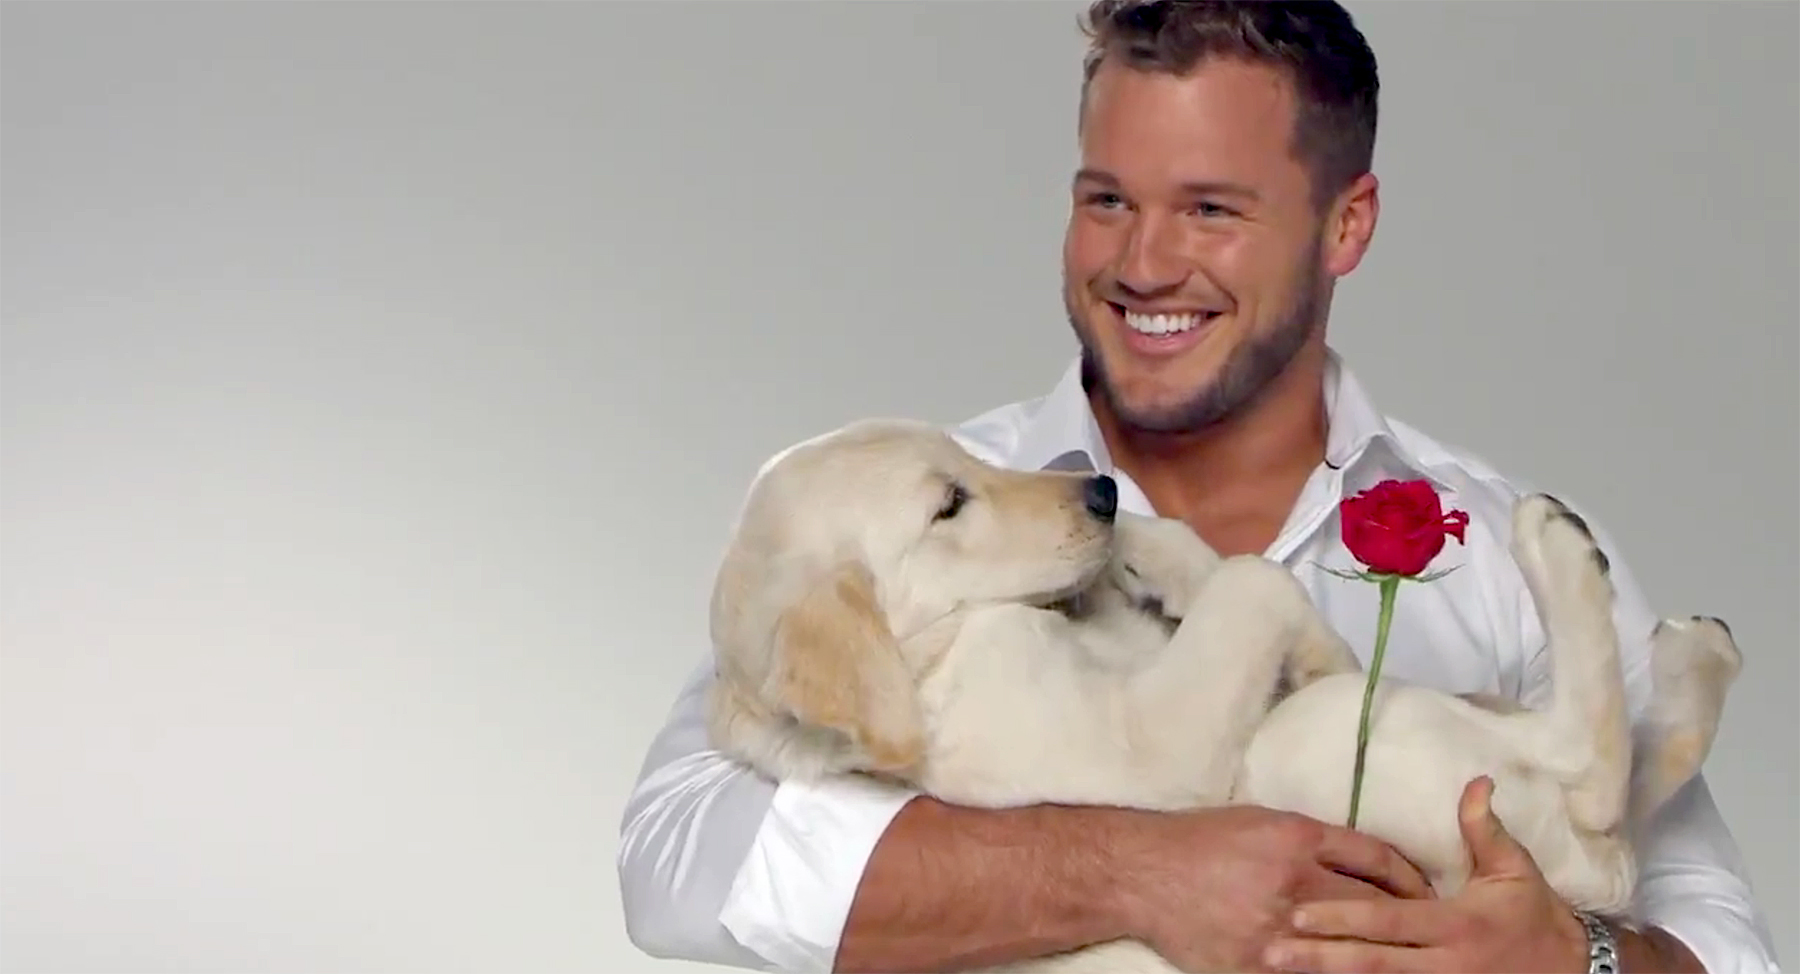 Bachelor 23 - Colton Underwood - Media - SM - Discussion - *Sleuthing Spoilers*  - Page 31 Colton-Underwood-Bachelor-art